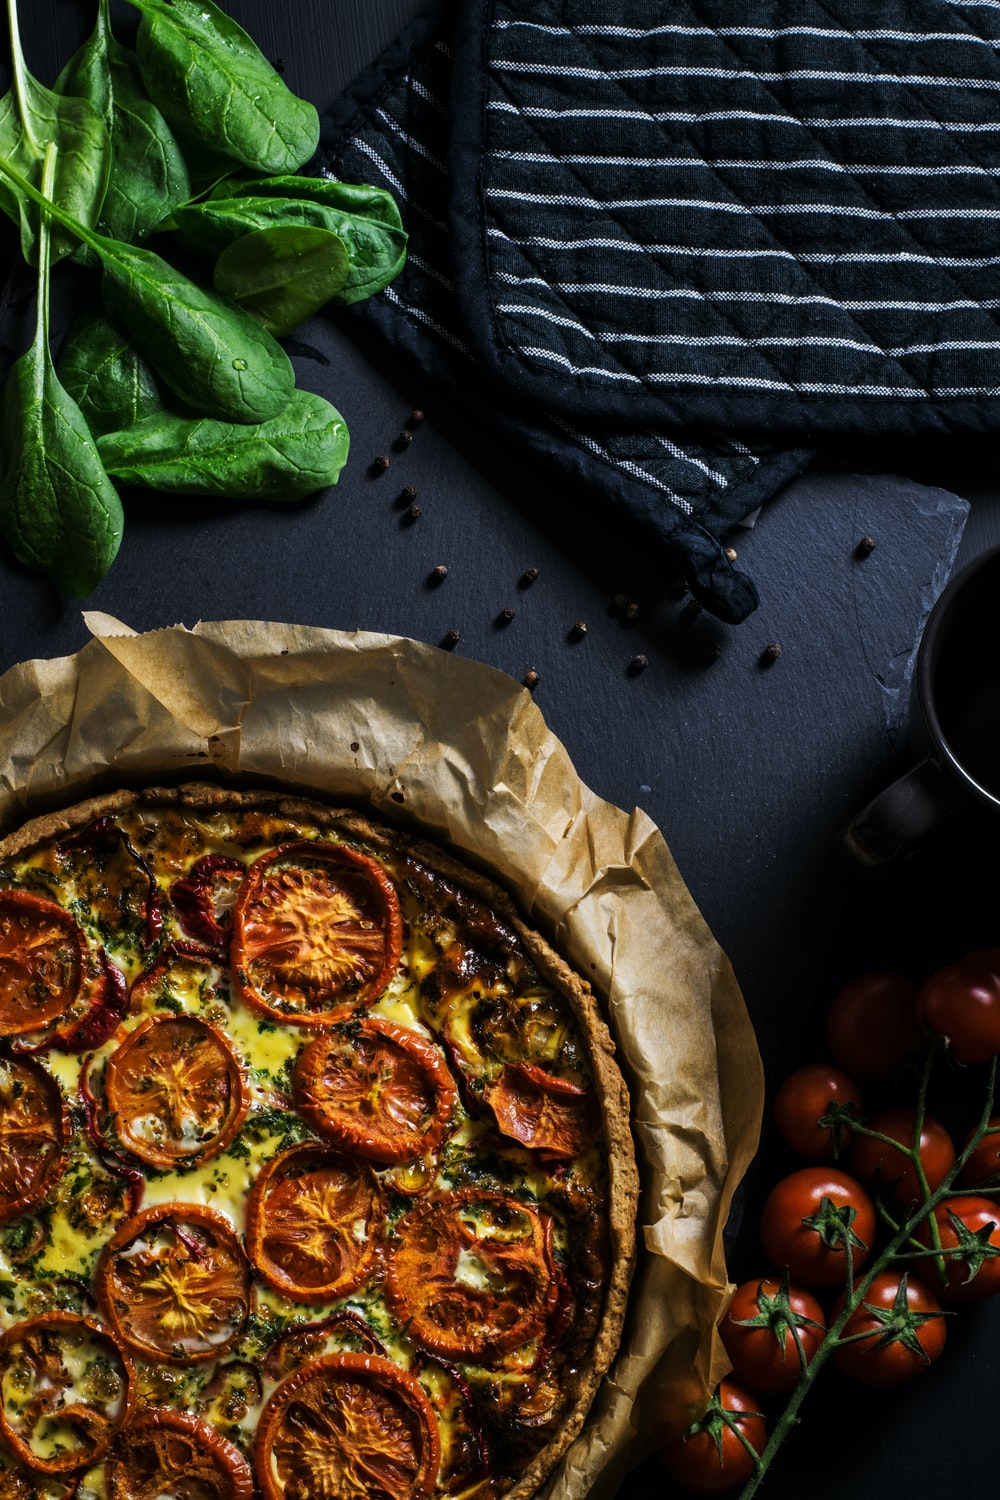 flat lay photography of two black pot holders beside tomatoes and pizza